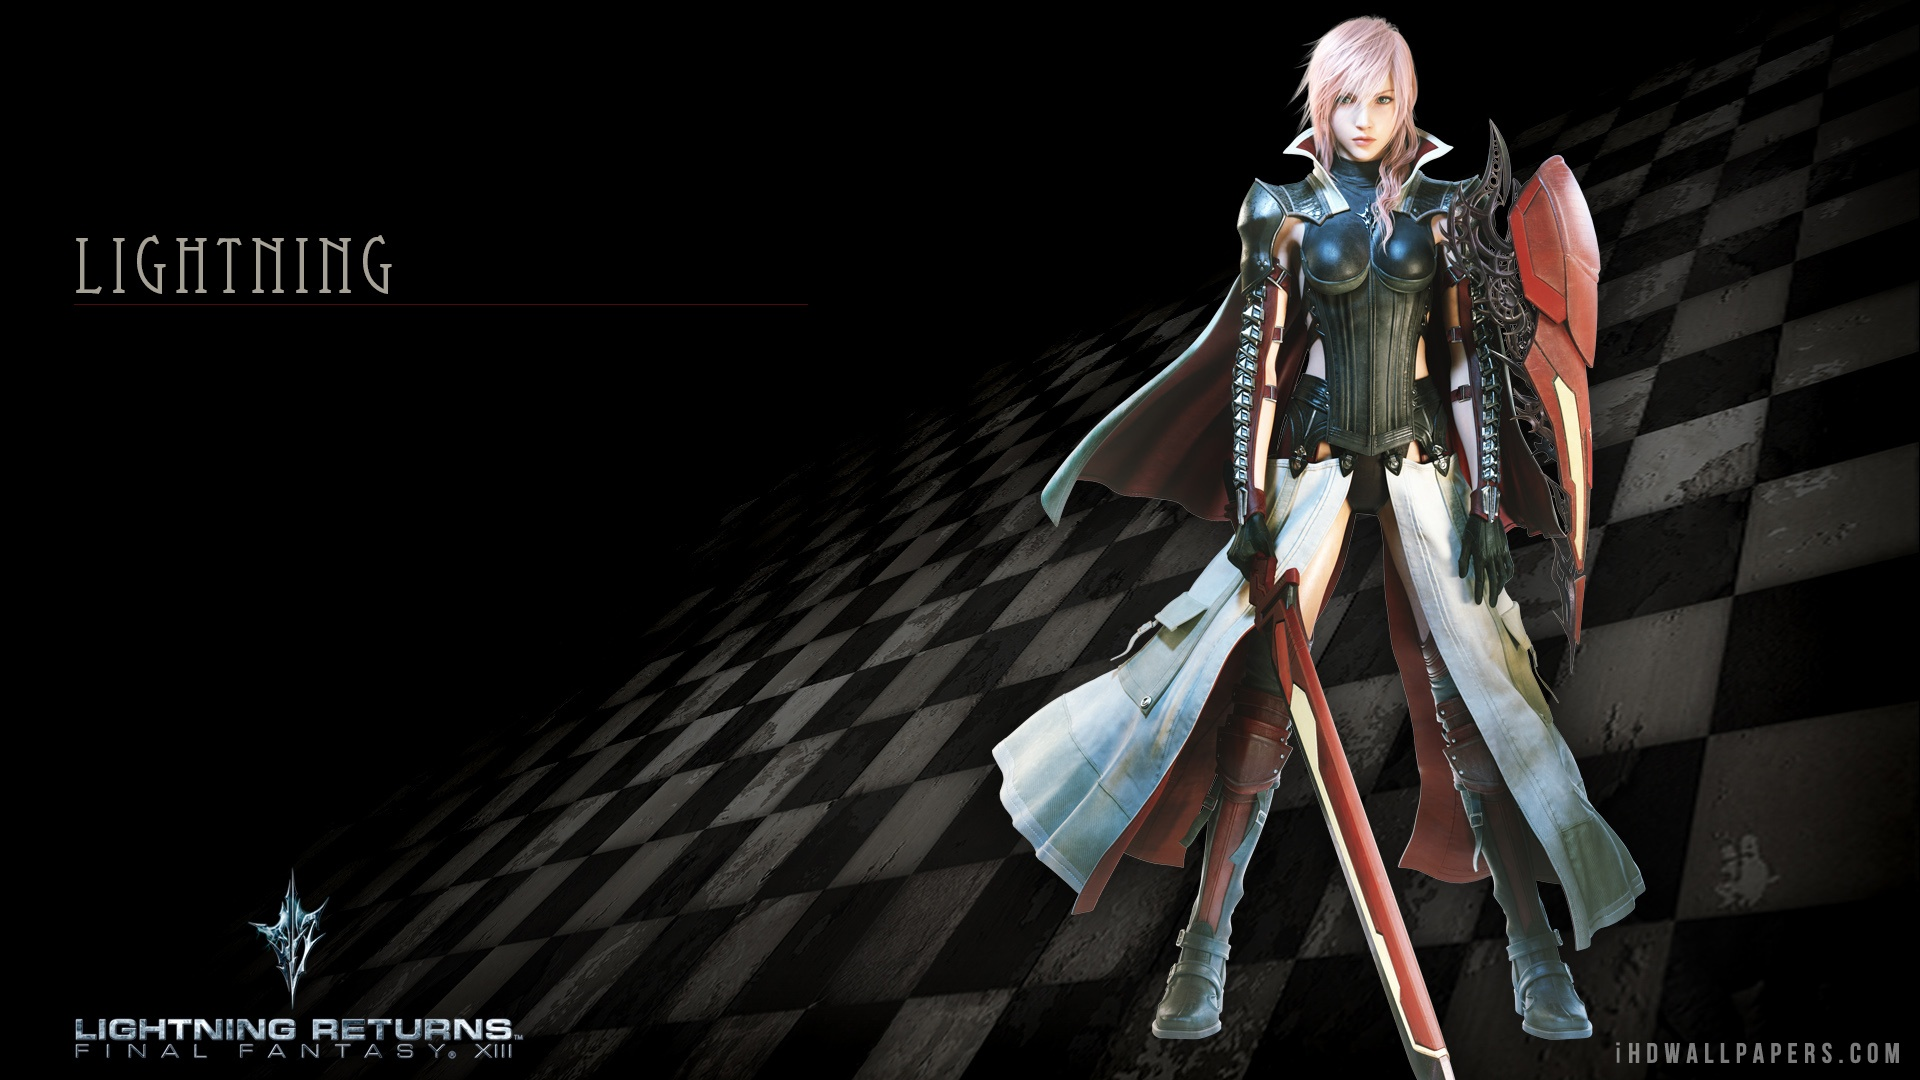 Lightning Returns Final Fantasy XIII HD Wallpaper   iHD Wallpapers 1920x1080